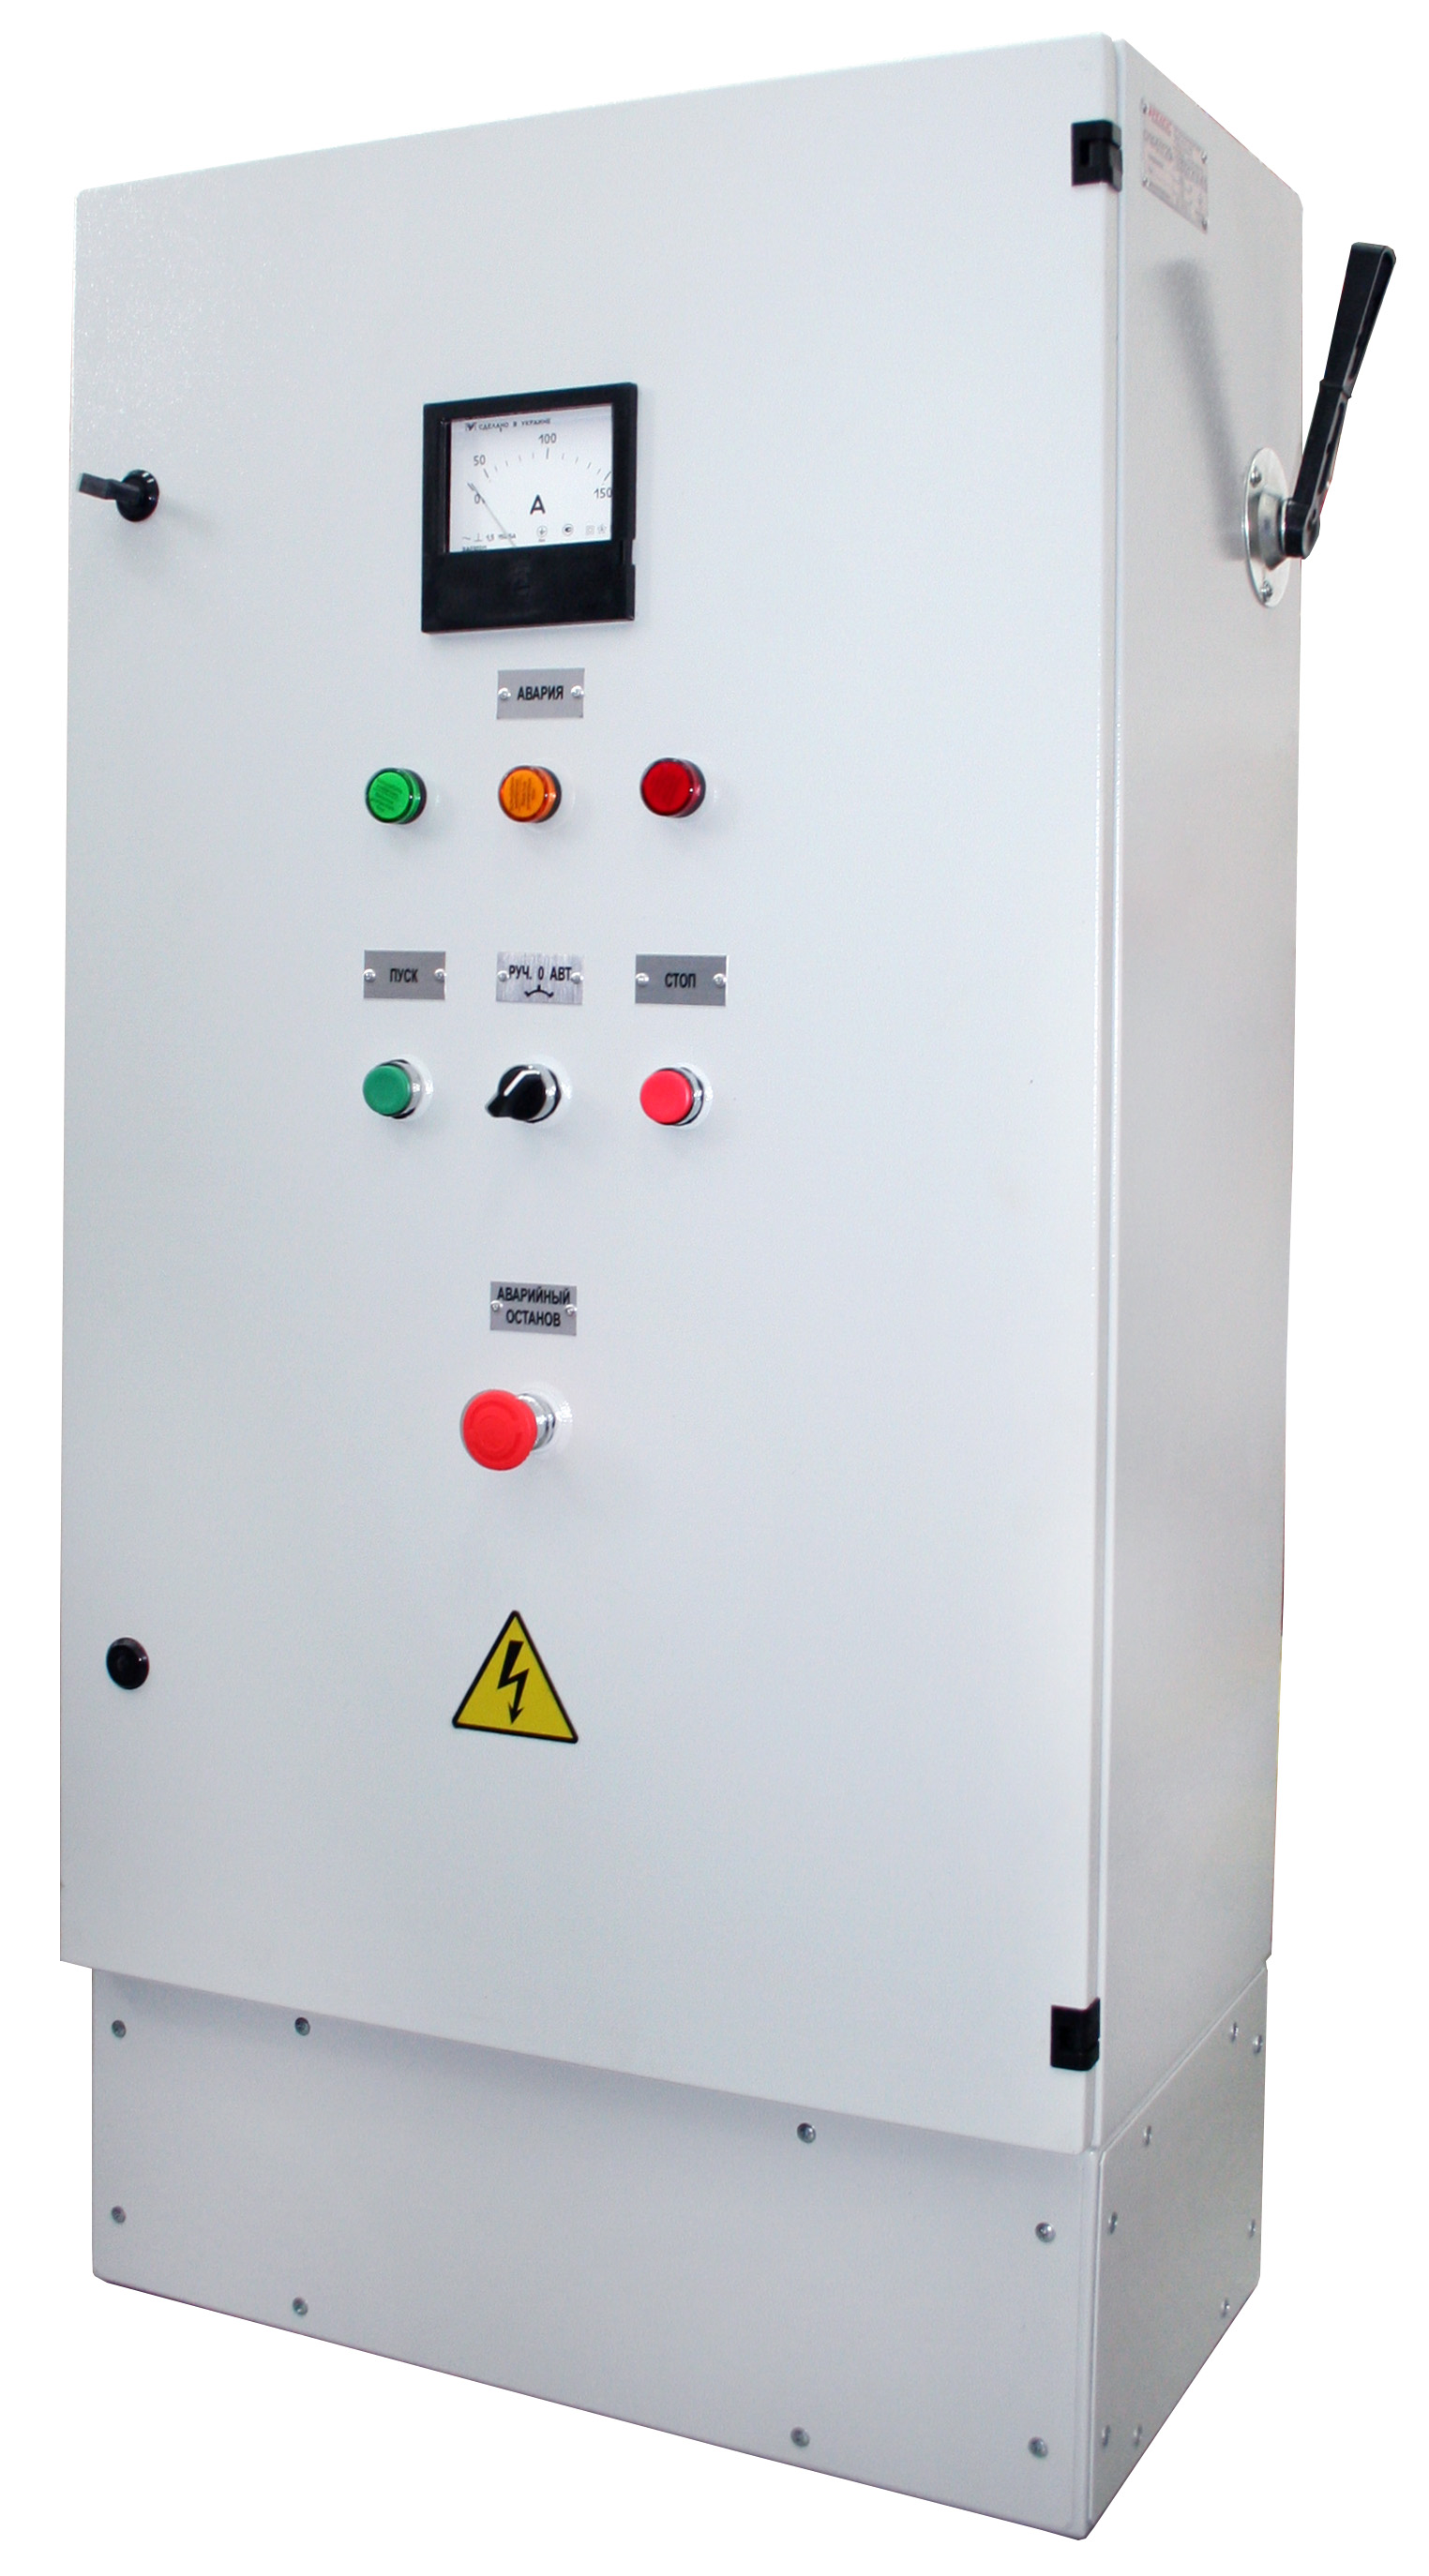 SUZD-01 - Control Stations of Motor Protection